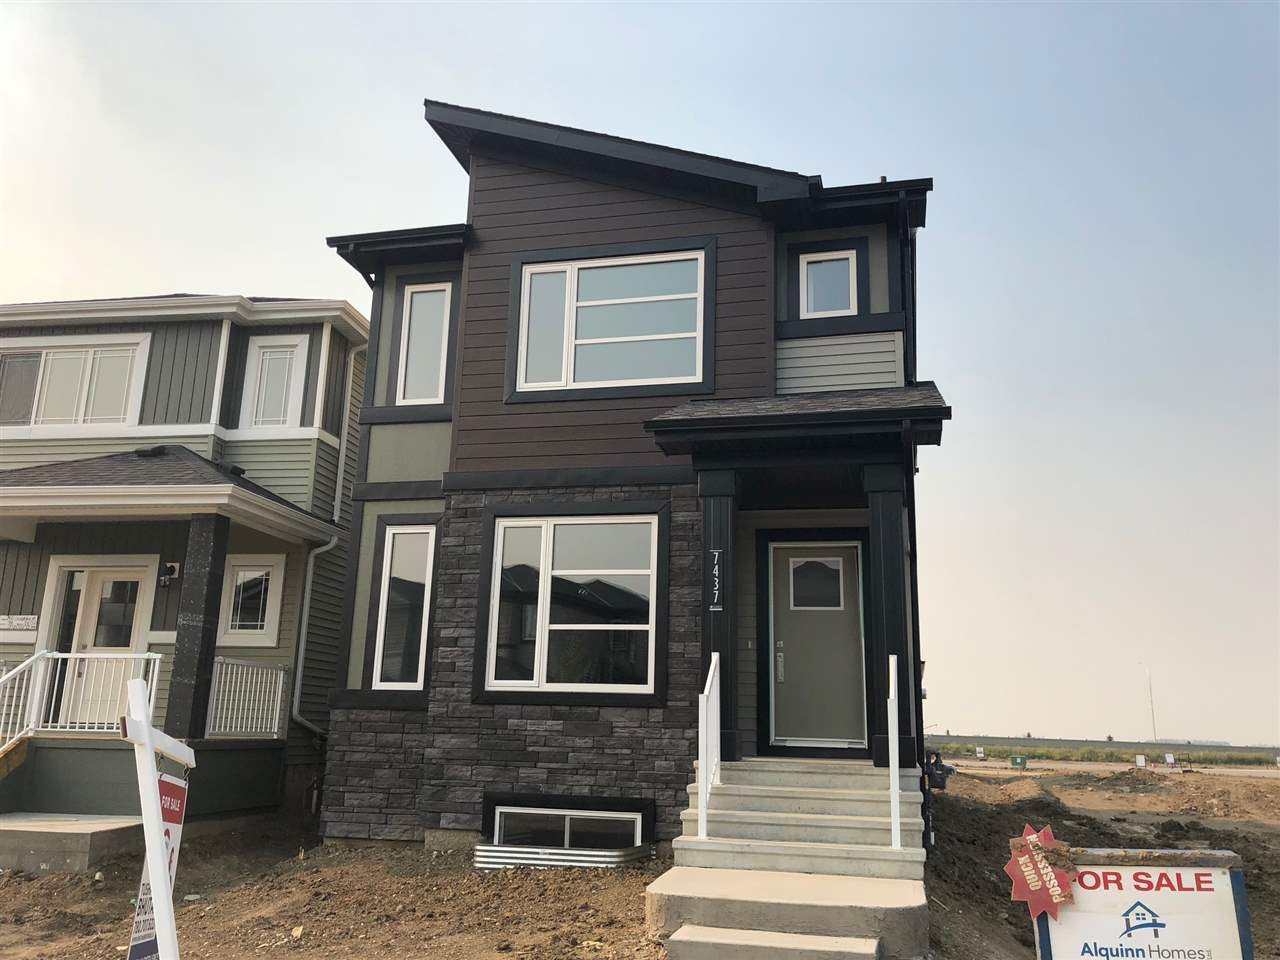 Main Photo: 7437 Creighton Place in Edmonton: Zone 55 House for sale : MLS®# E4110855